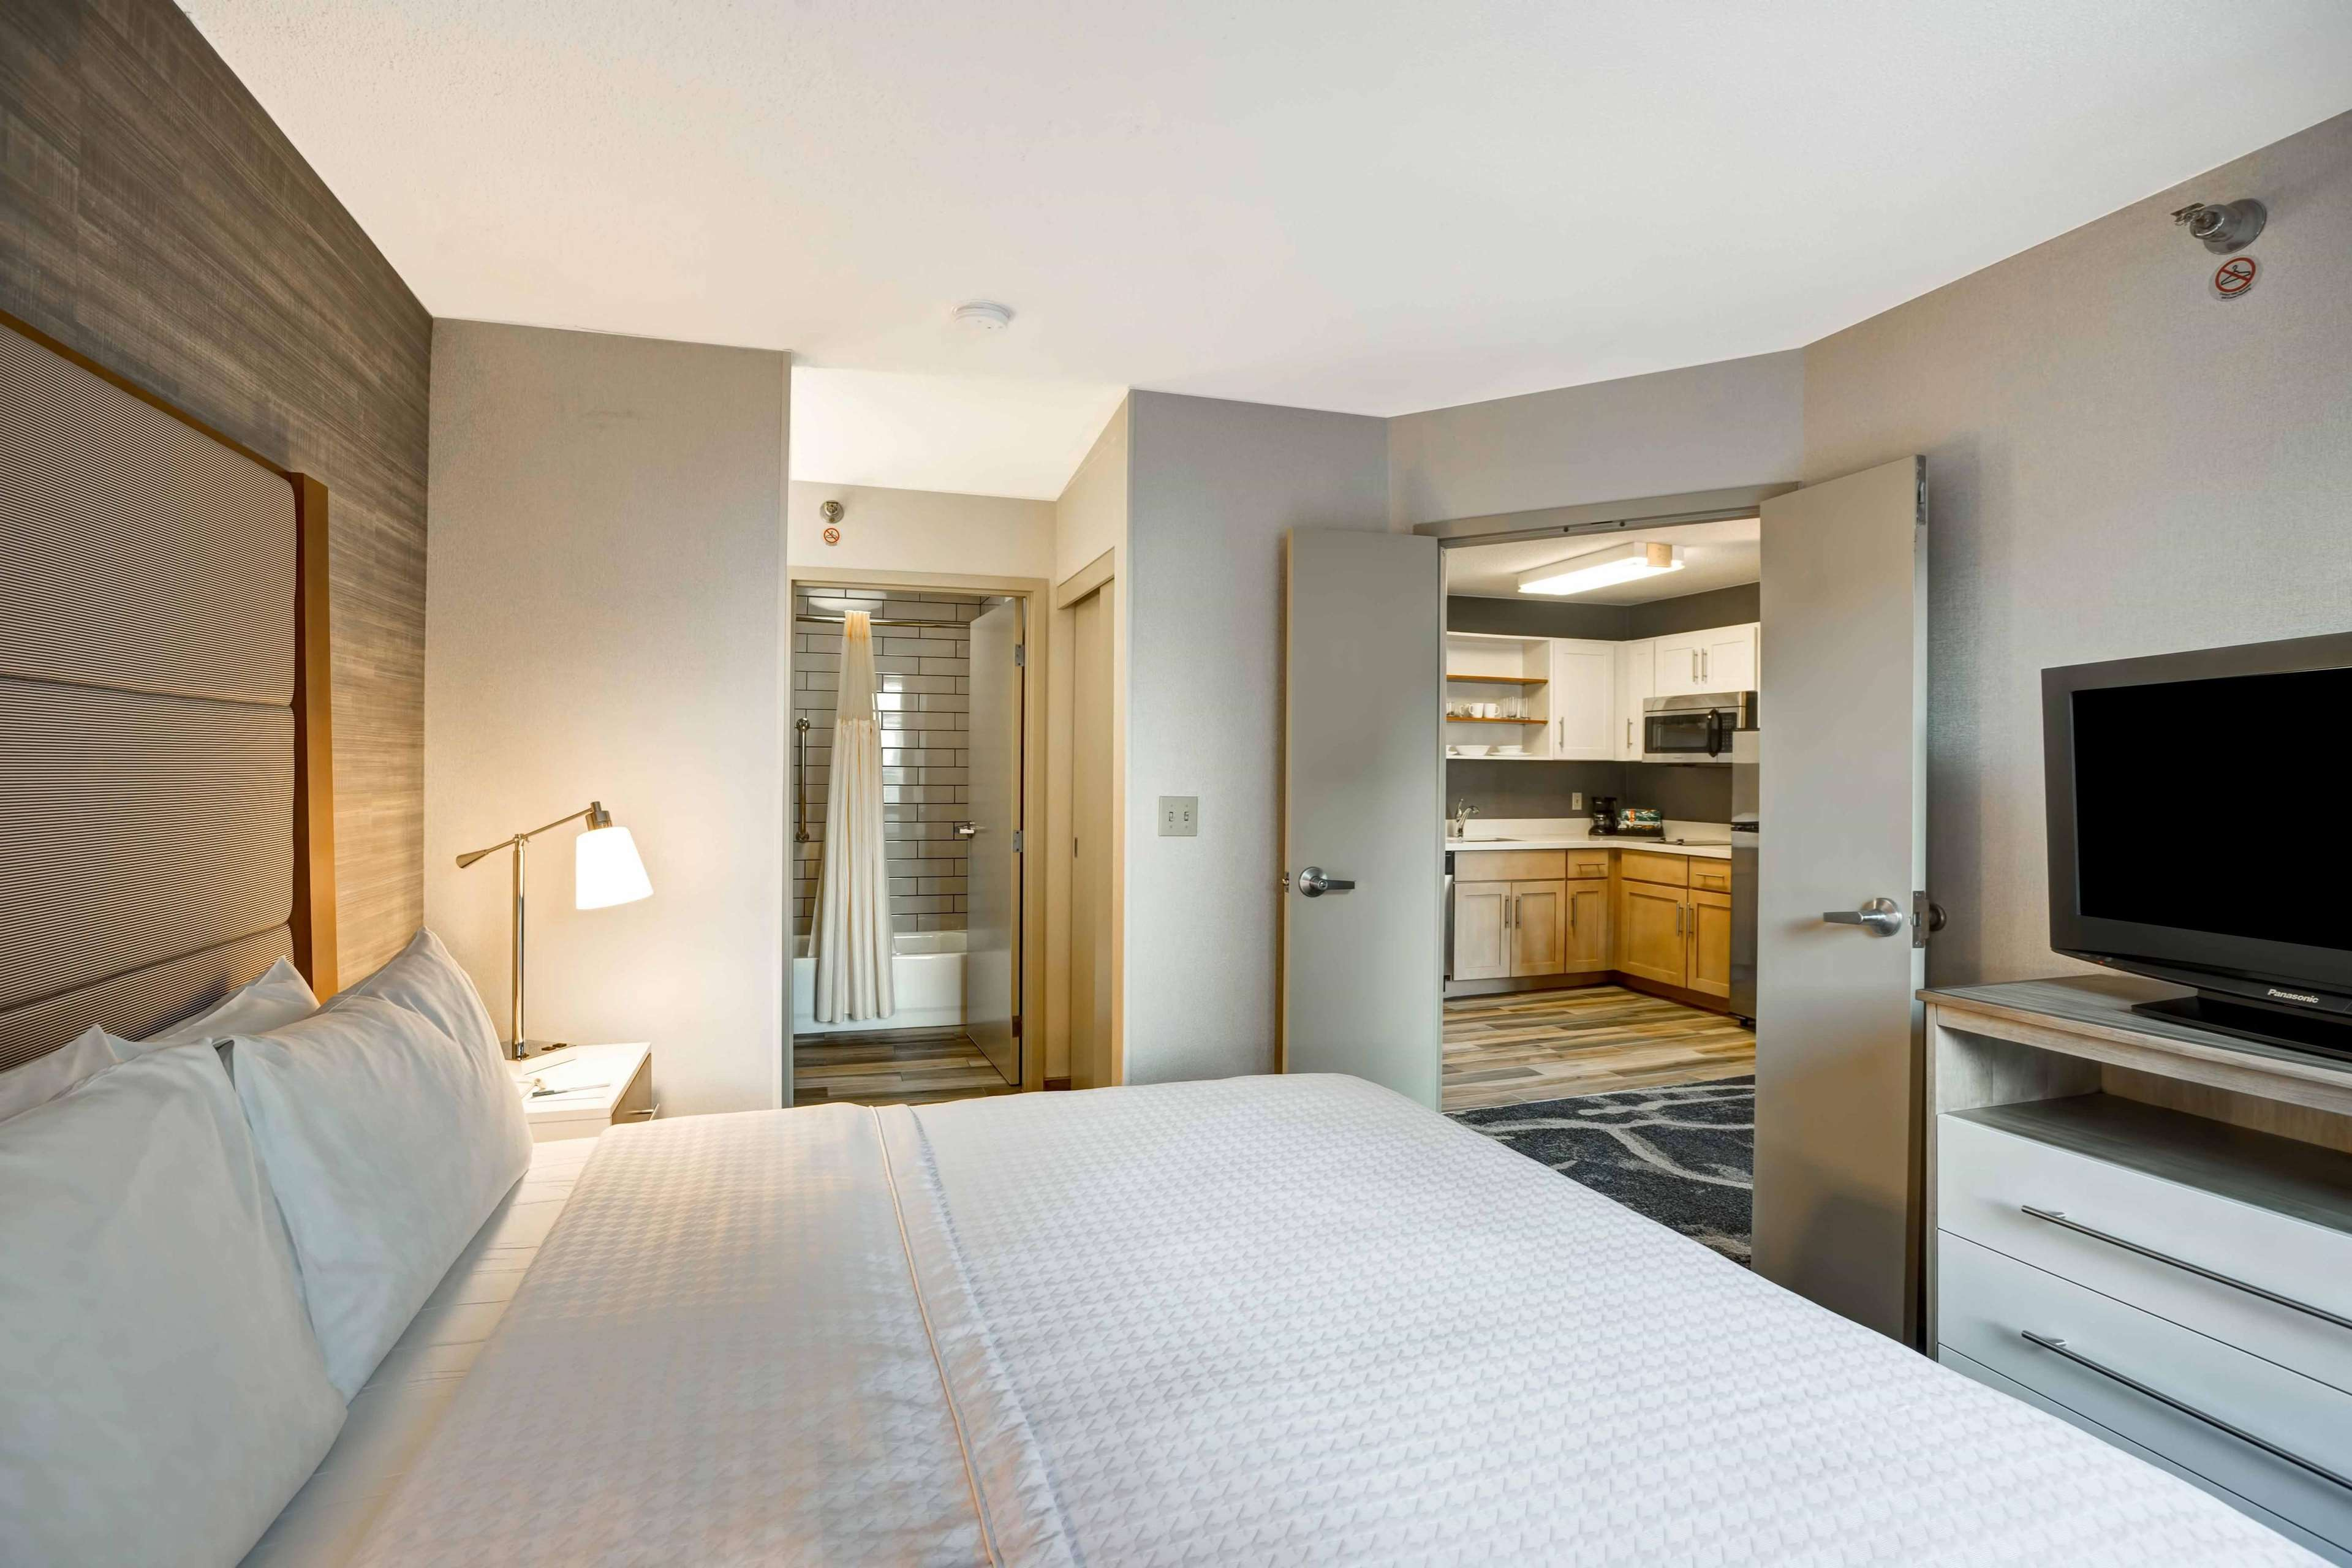 Homewood Suites by Hilton Chicago-Downtown image 42